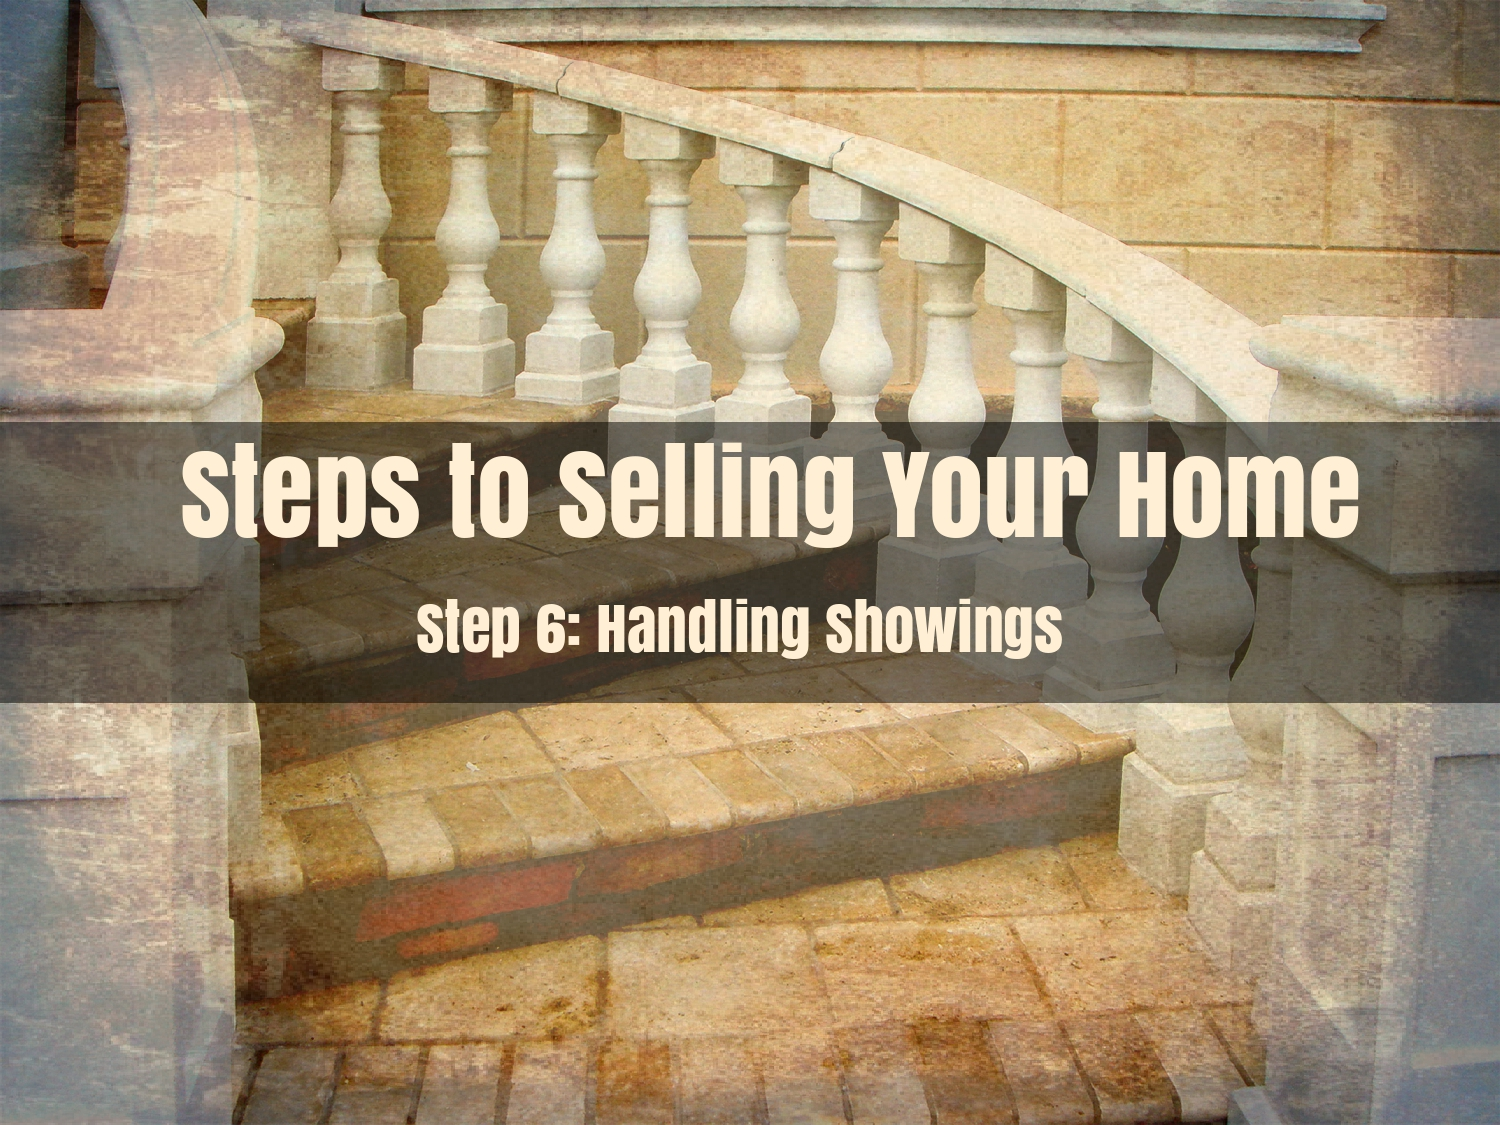 Handling Showings on your home